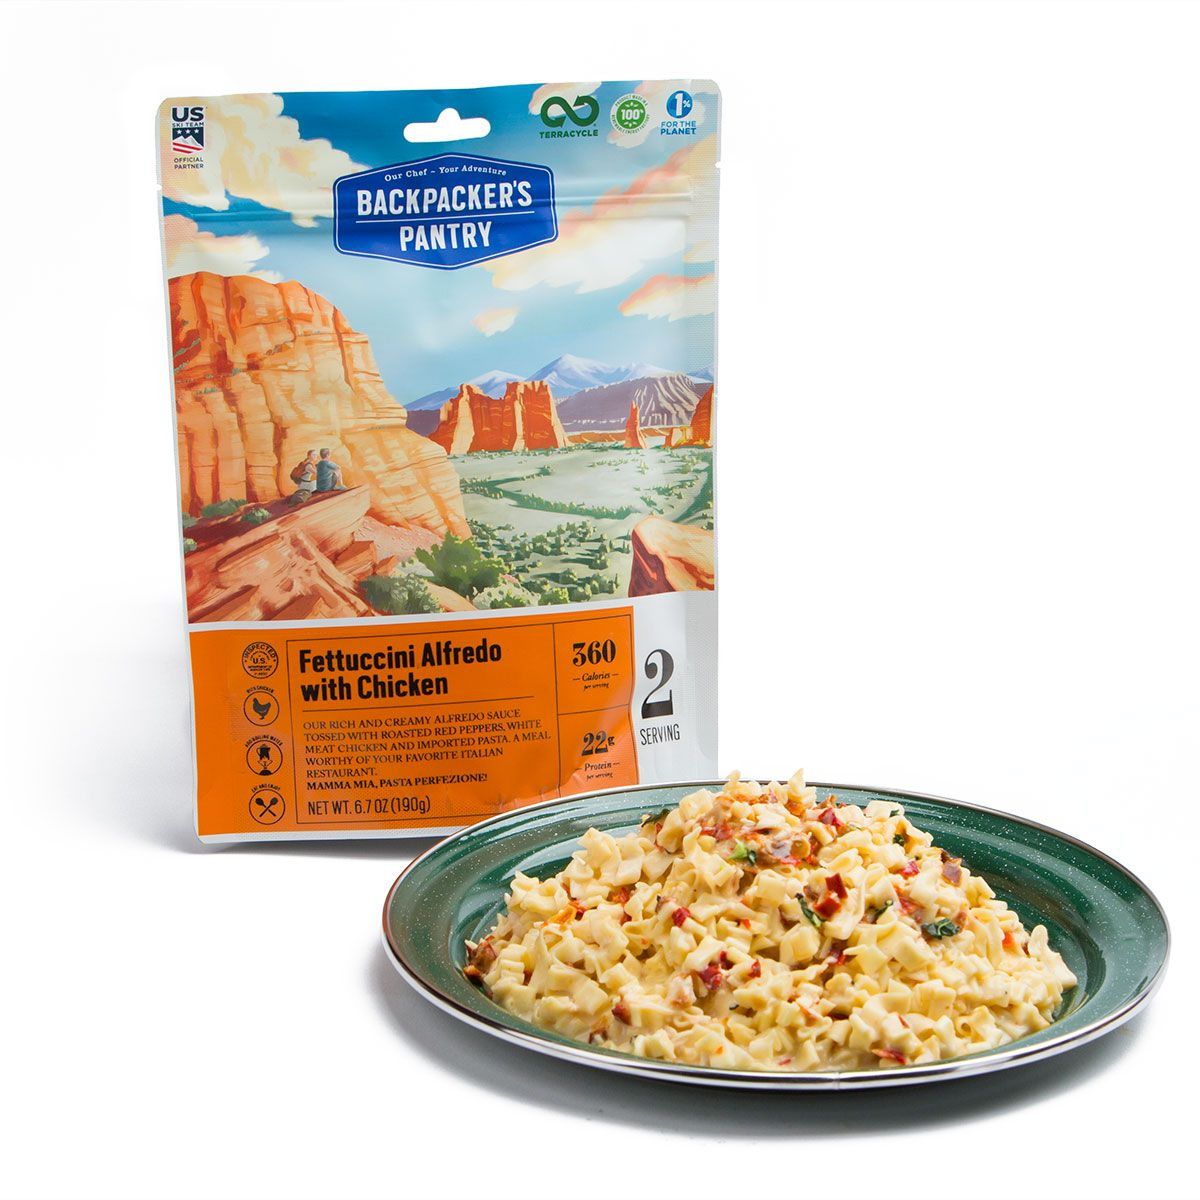 BP Fettuccine Alfredo with Chicken pouch and plate